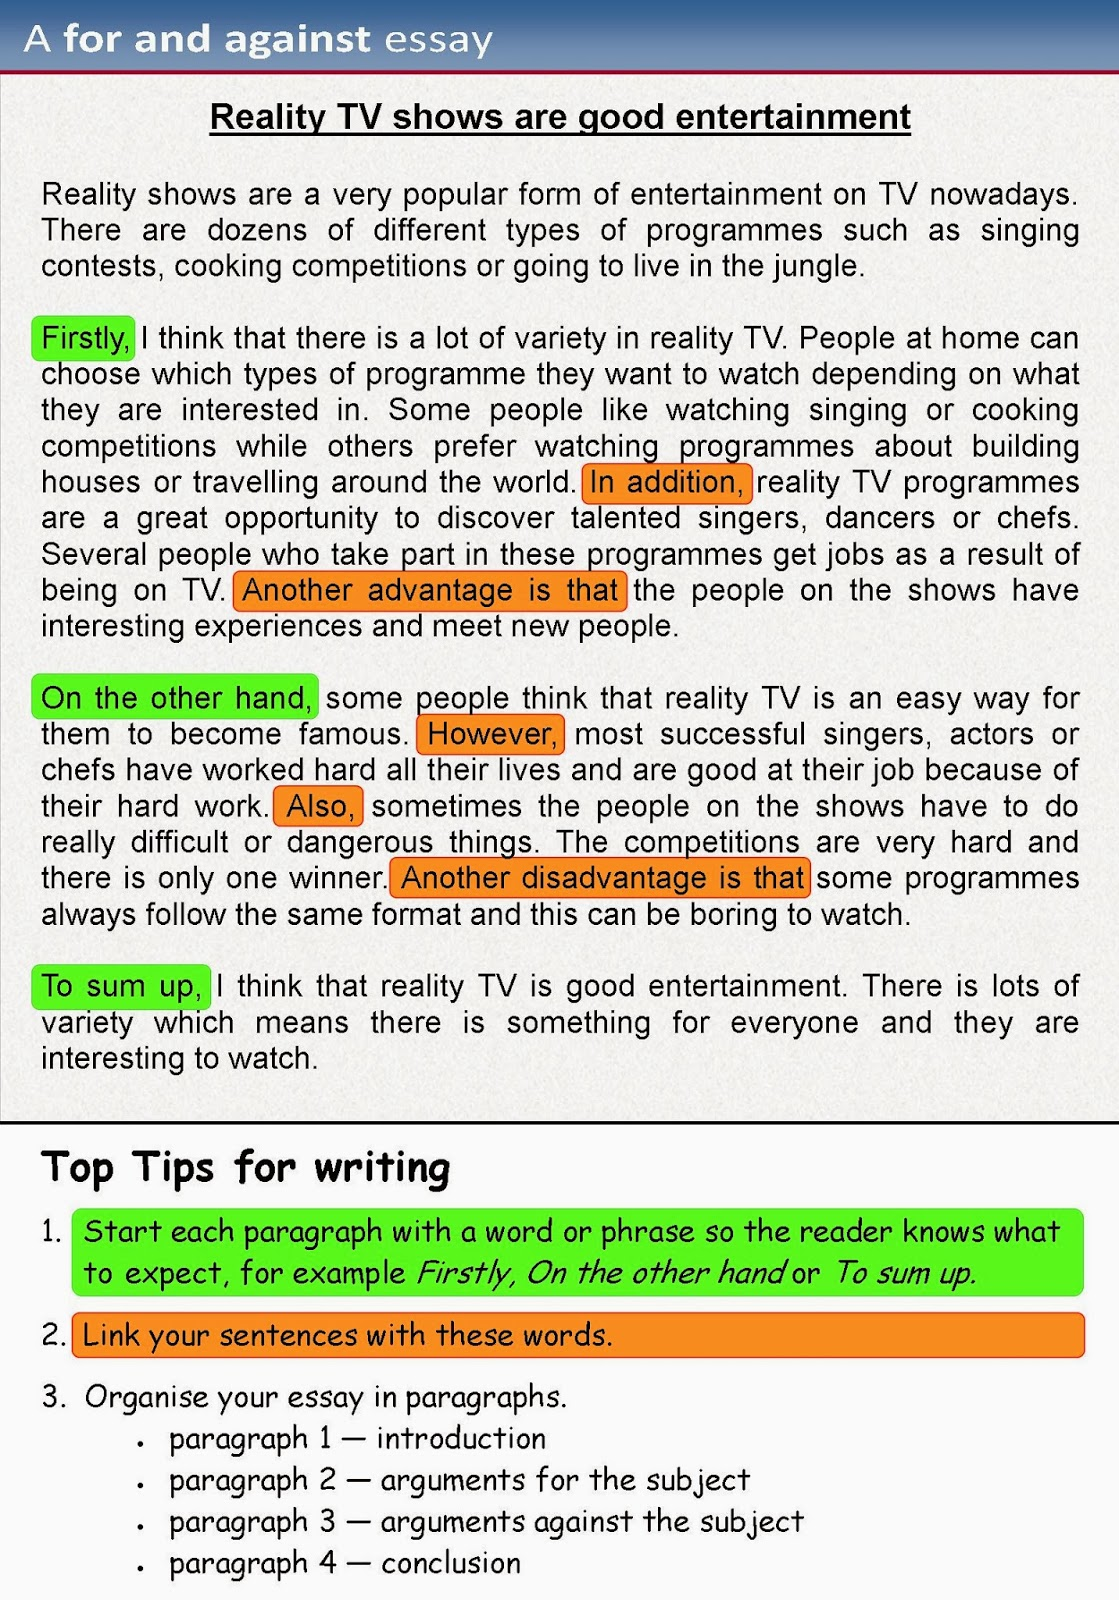 stanford roommate essay example Whether you're tackling your roommate essay for stanford, one of the common app prompts, or some other personal essay, our friend ethan sawyer, the.